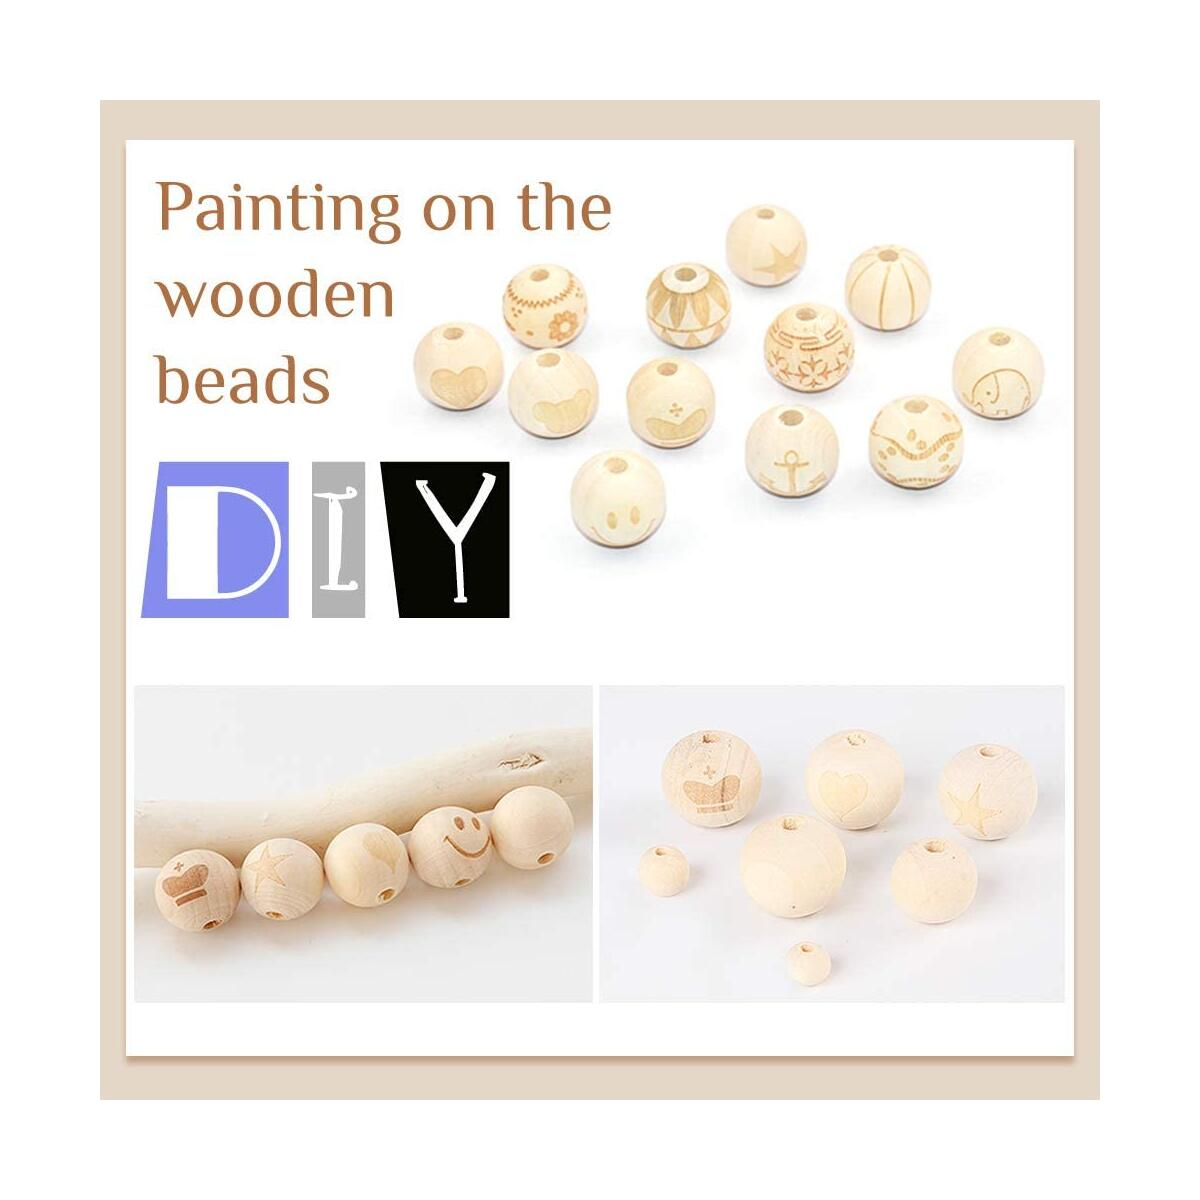 500pcs Natural Wood Beads, 6 Sizes Unfinished Wooden Decorative Beads Round Loose Beads Suitable for Home and Holiday Decor, DIY Craft Making(8mm,10mm,12mm,14mm,16mm,20mm)